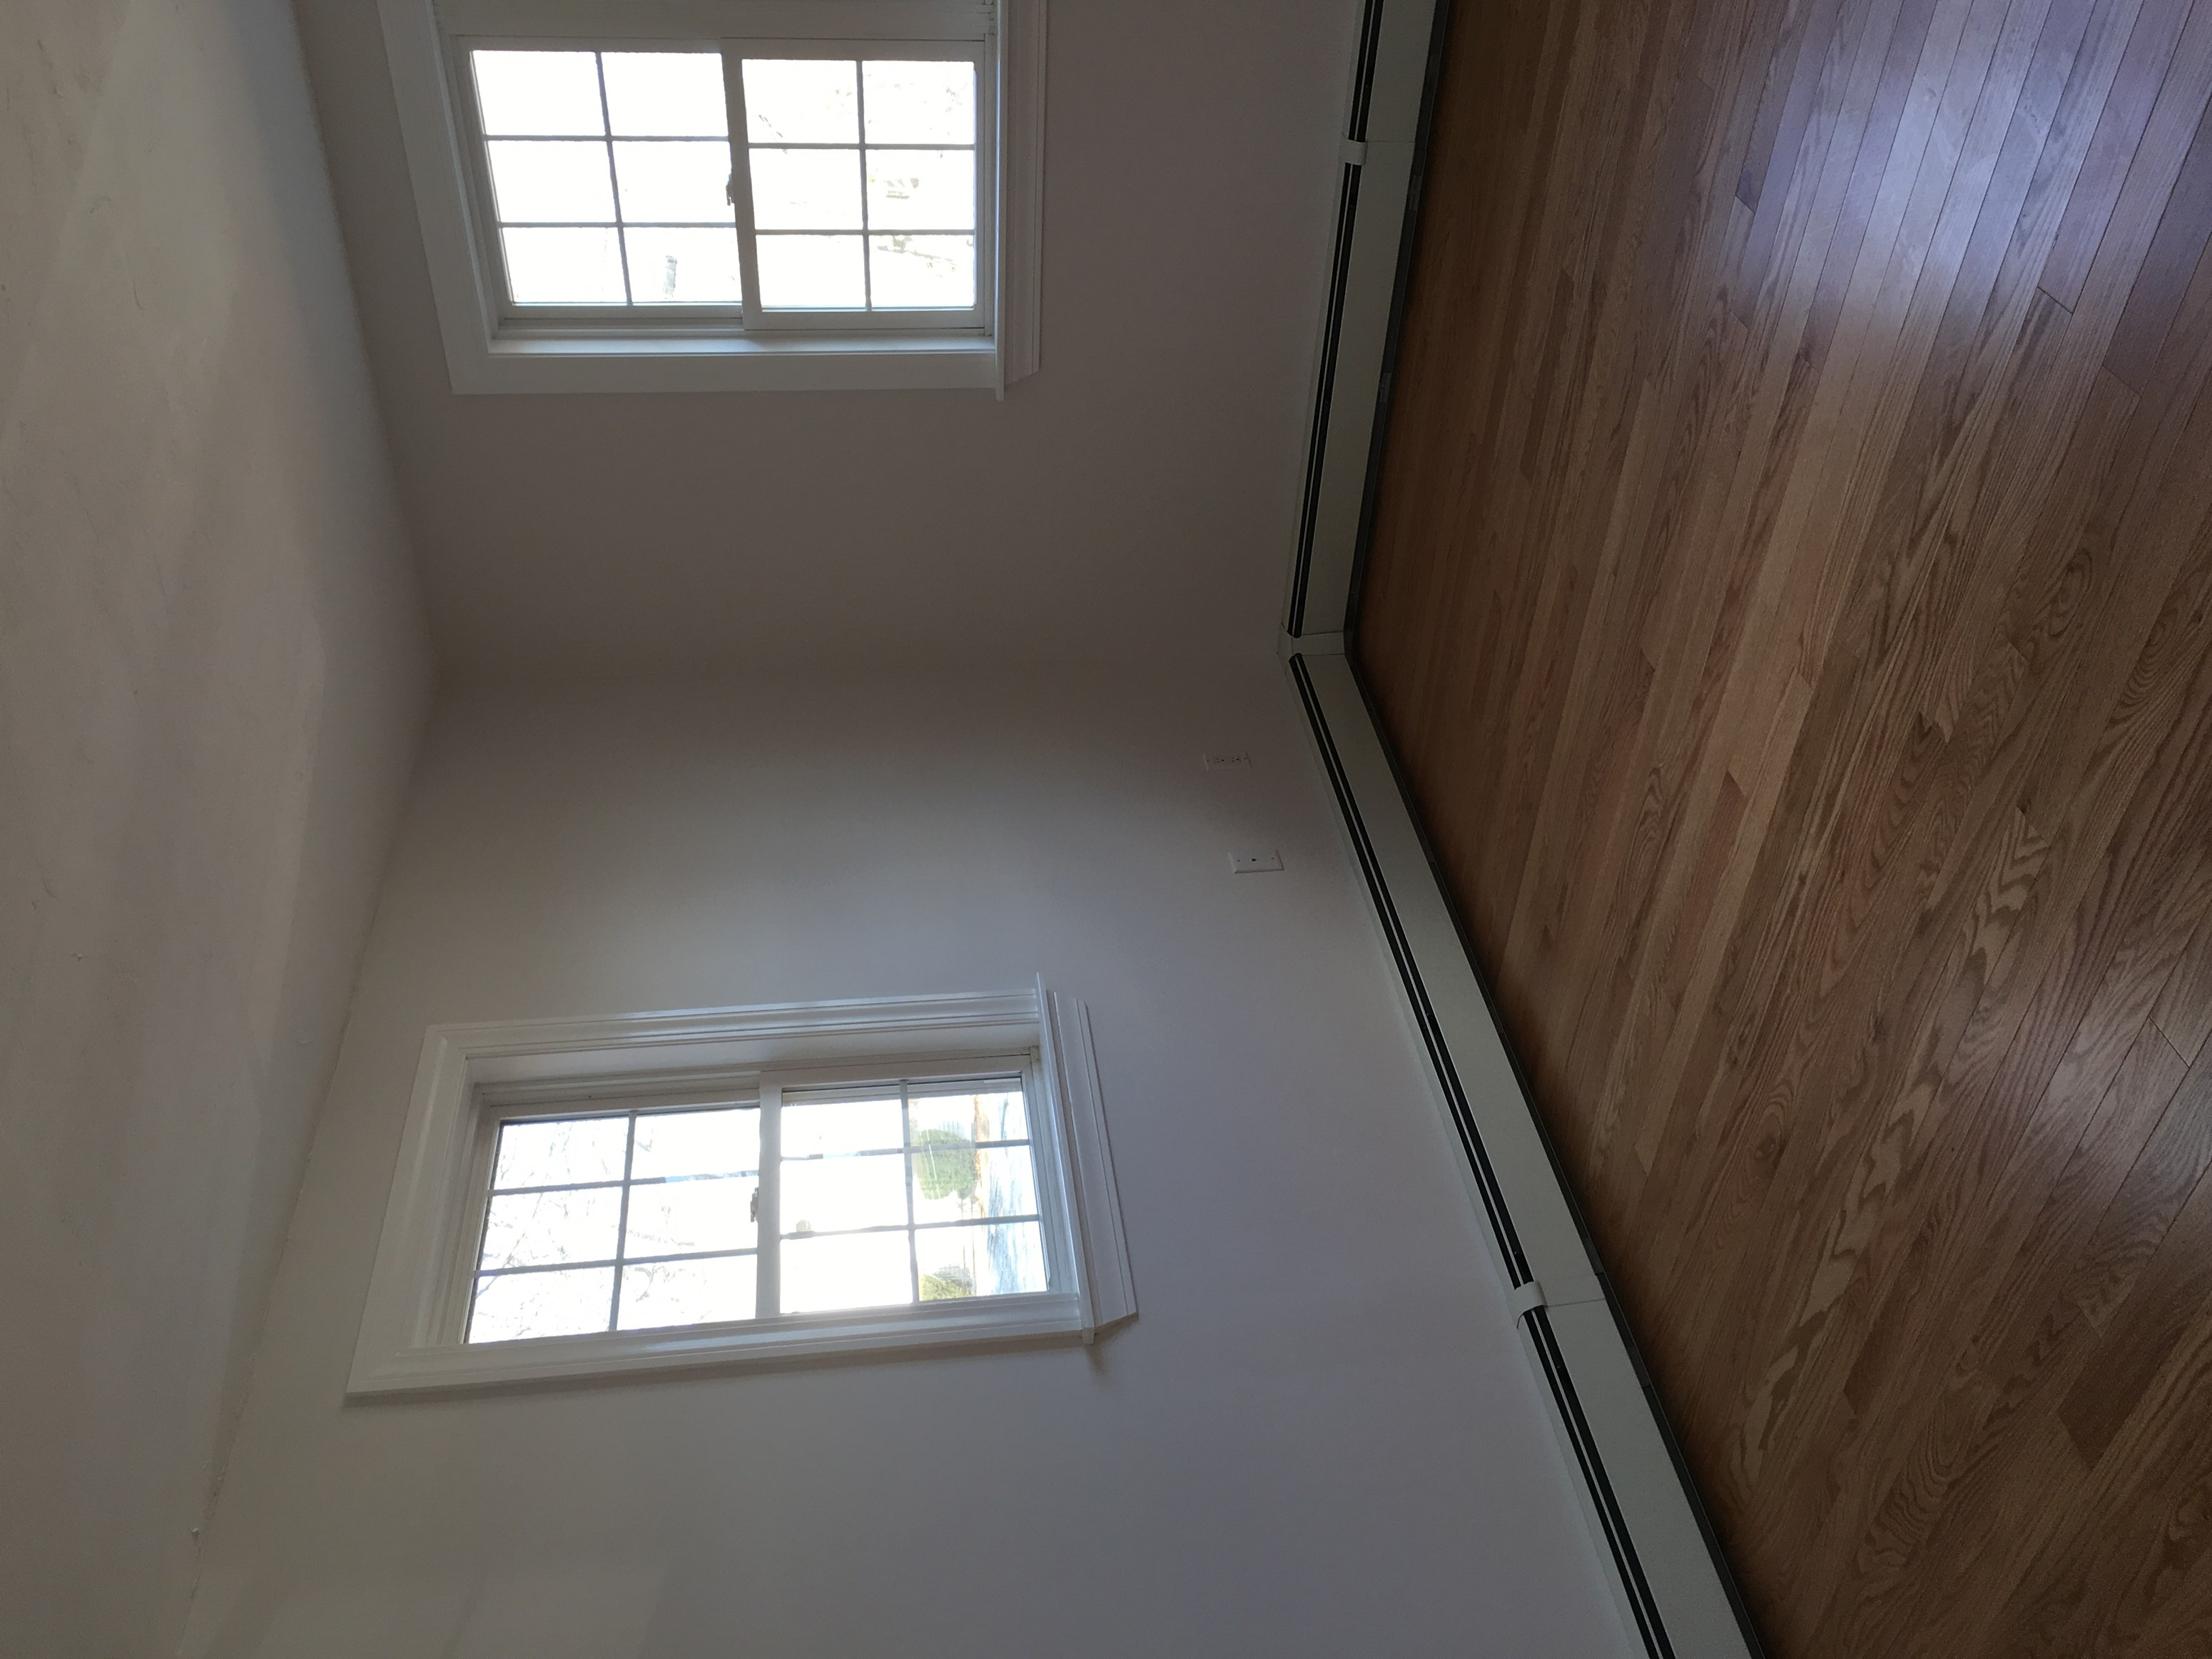 Rooms for Rent Cambridge, MA – Apartments, House, Commercial